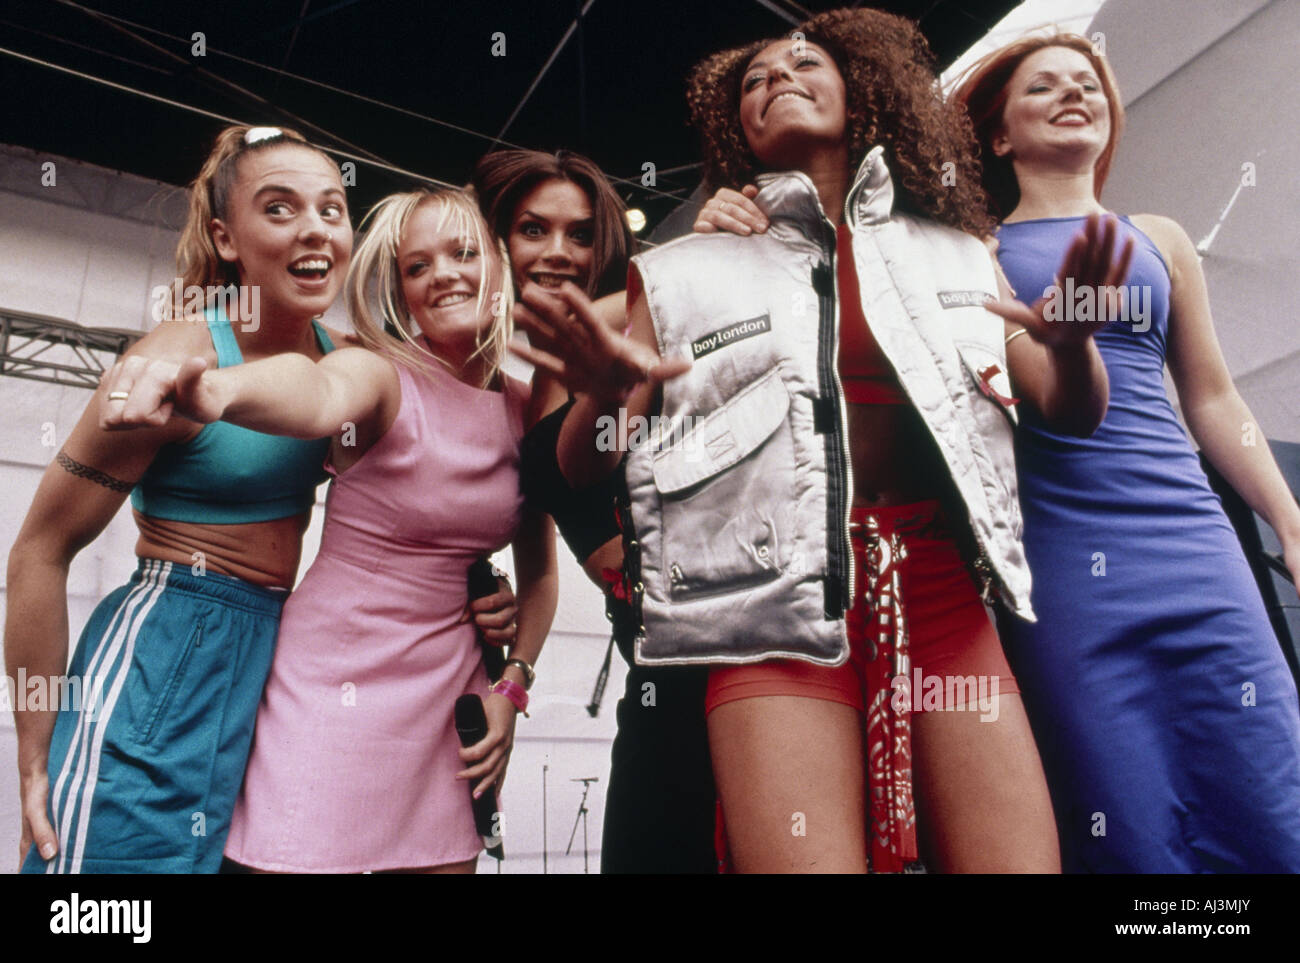 SPICE GIRLS UK pop group in 1996 from left Melanie Chisholm, Emma Bunton,  Victoria Beckham. Melanie Brown and Geri Halliwell